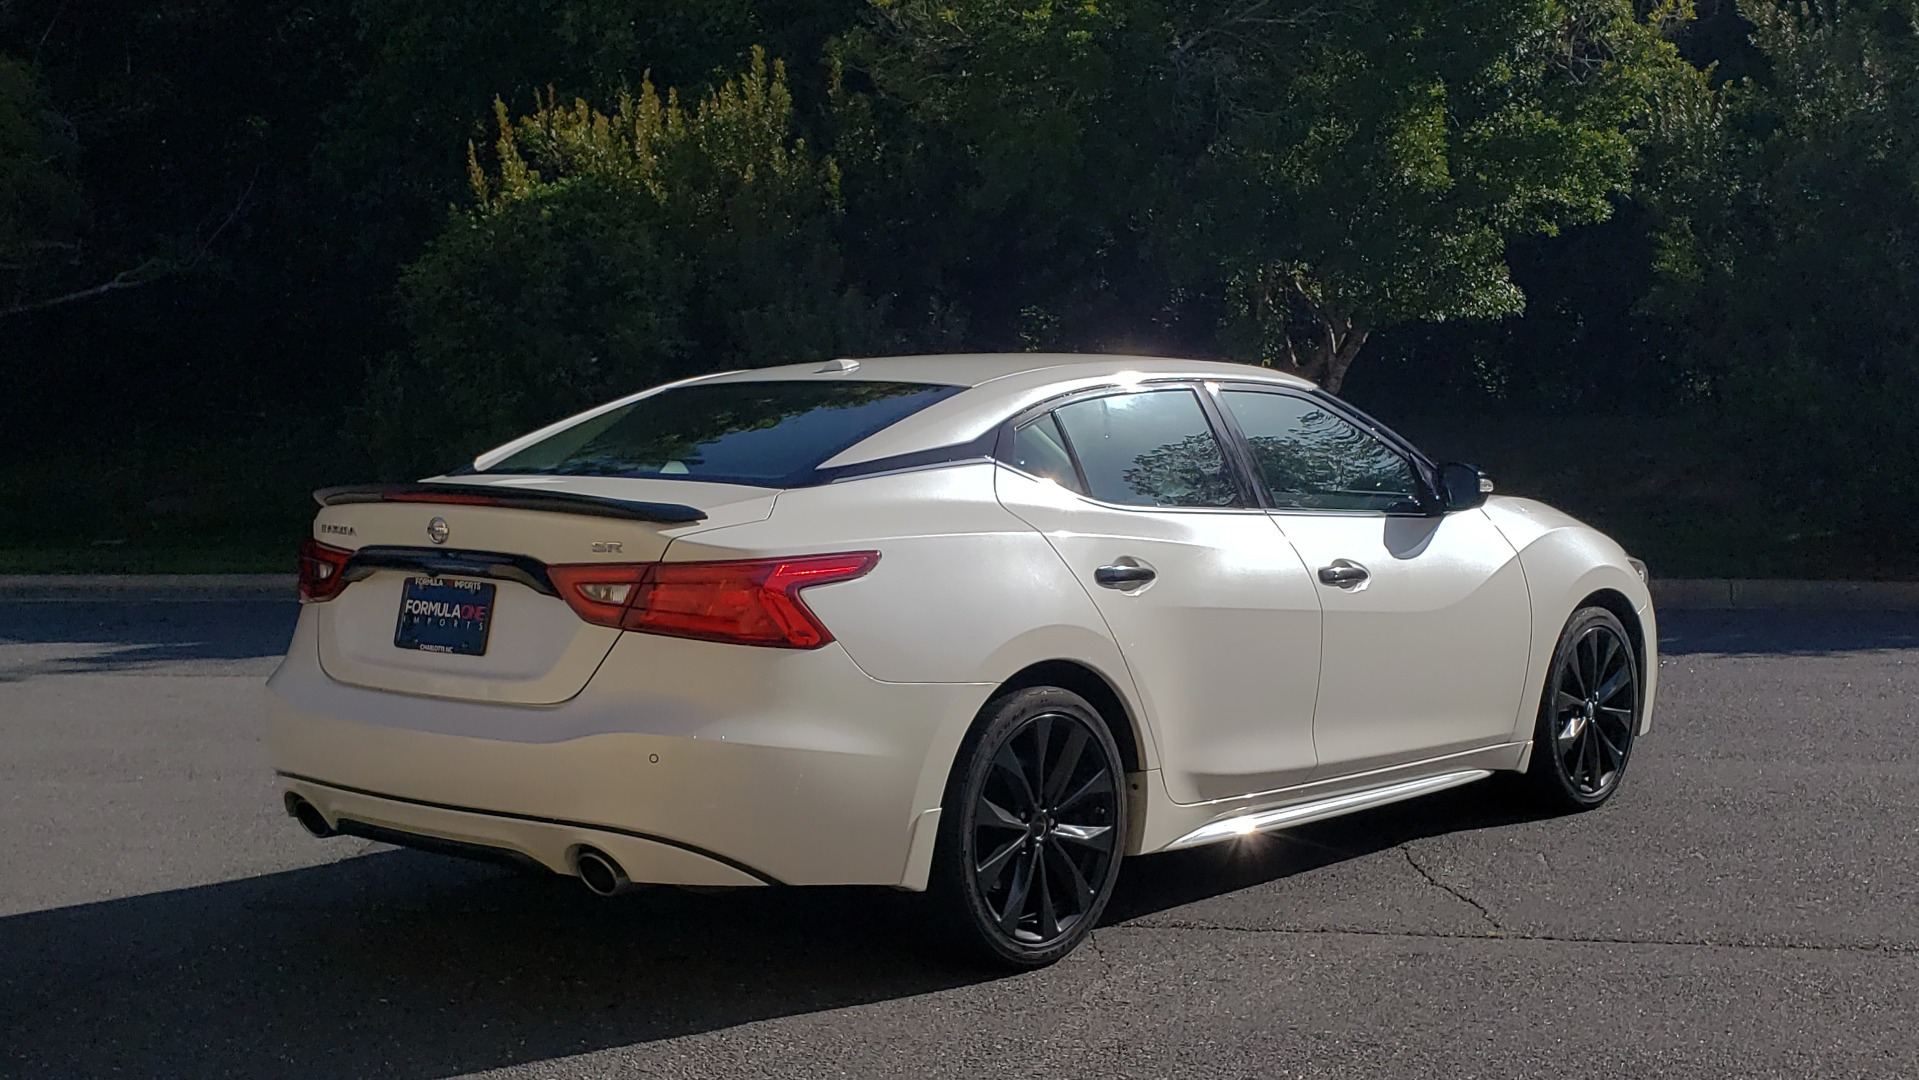 Used 2016 Nissan MAXIMA 3.5 SR / NAV / BOSE / VENT STS / CVT / REARVIEW for sale Sold at Formula Imports in Charlotte NC 28227 10